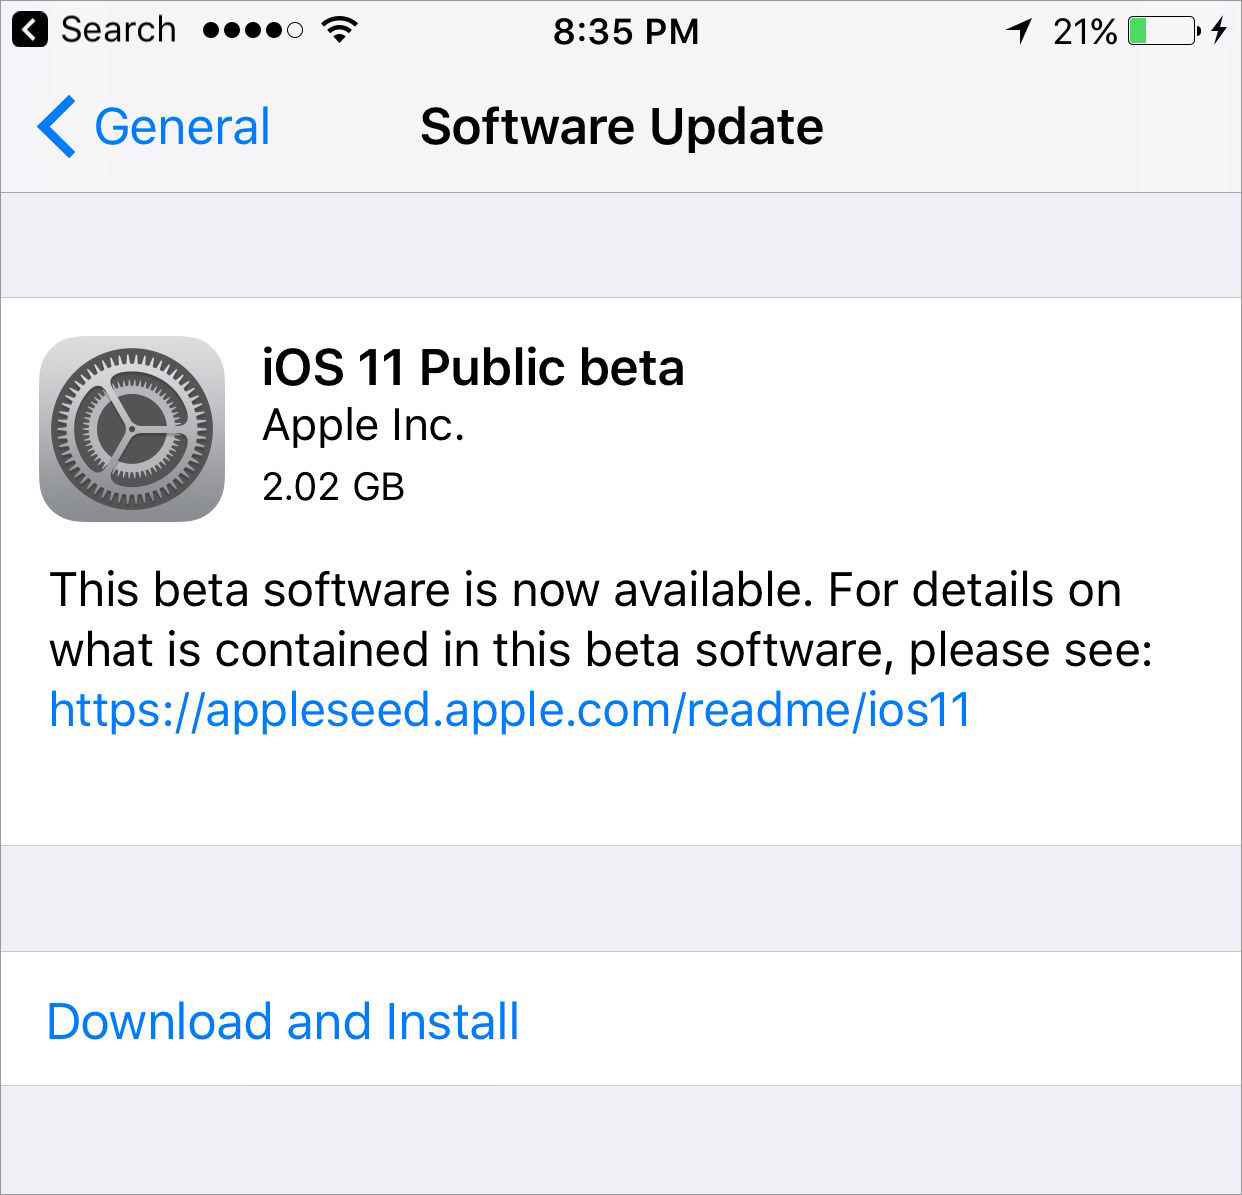 download and install ios 11 public beta